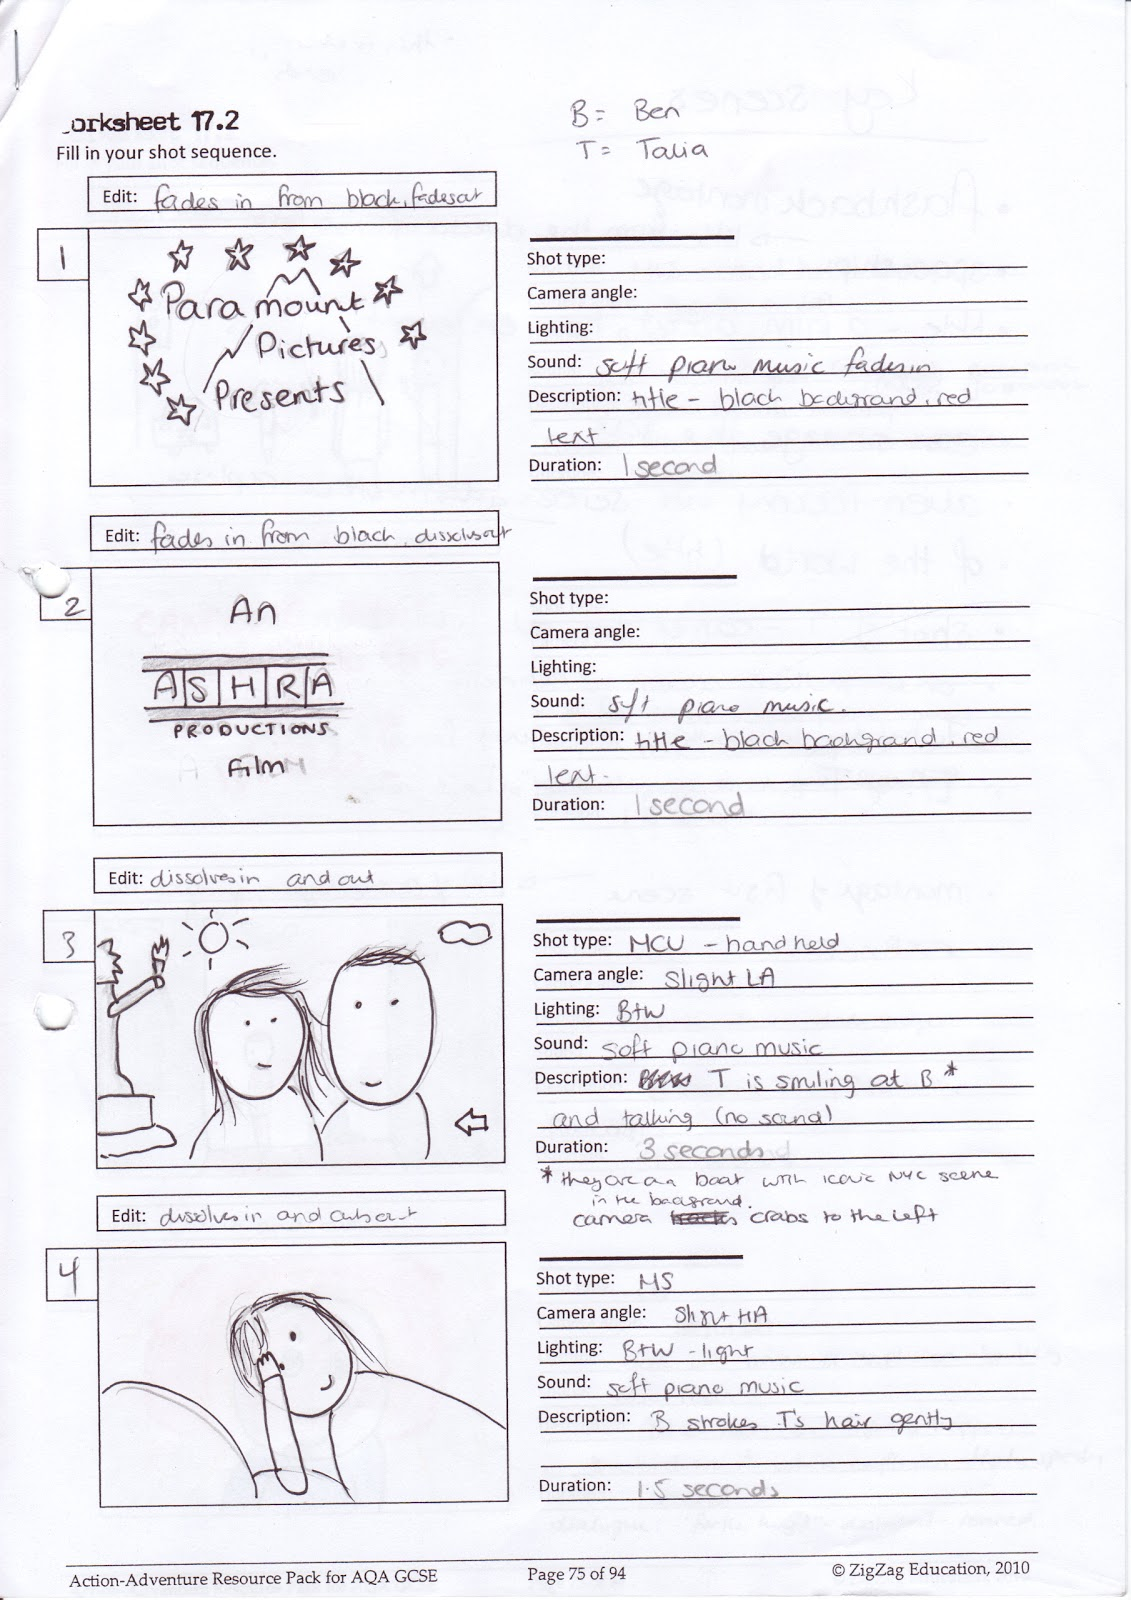 Bhavin\'s Action Adventure Blog!!!: My completed trailer storyboard